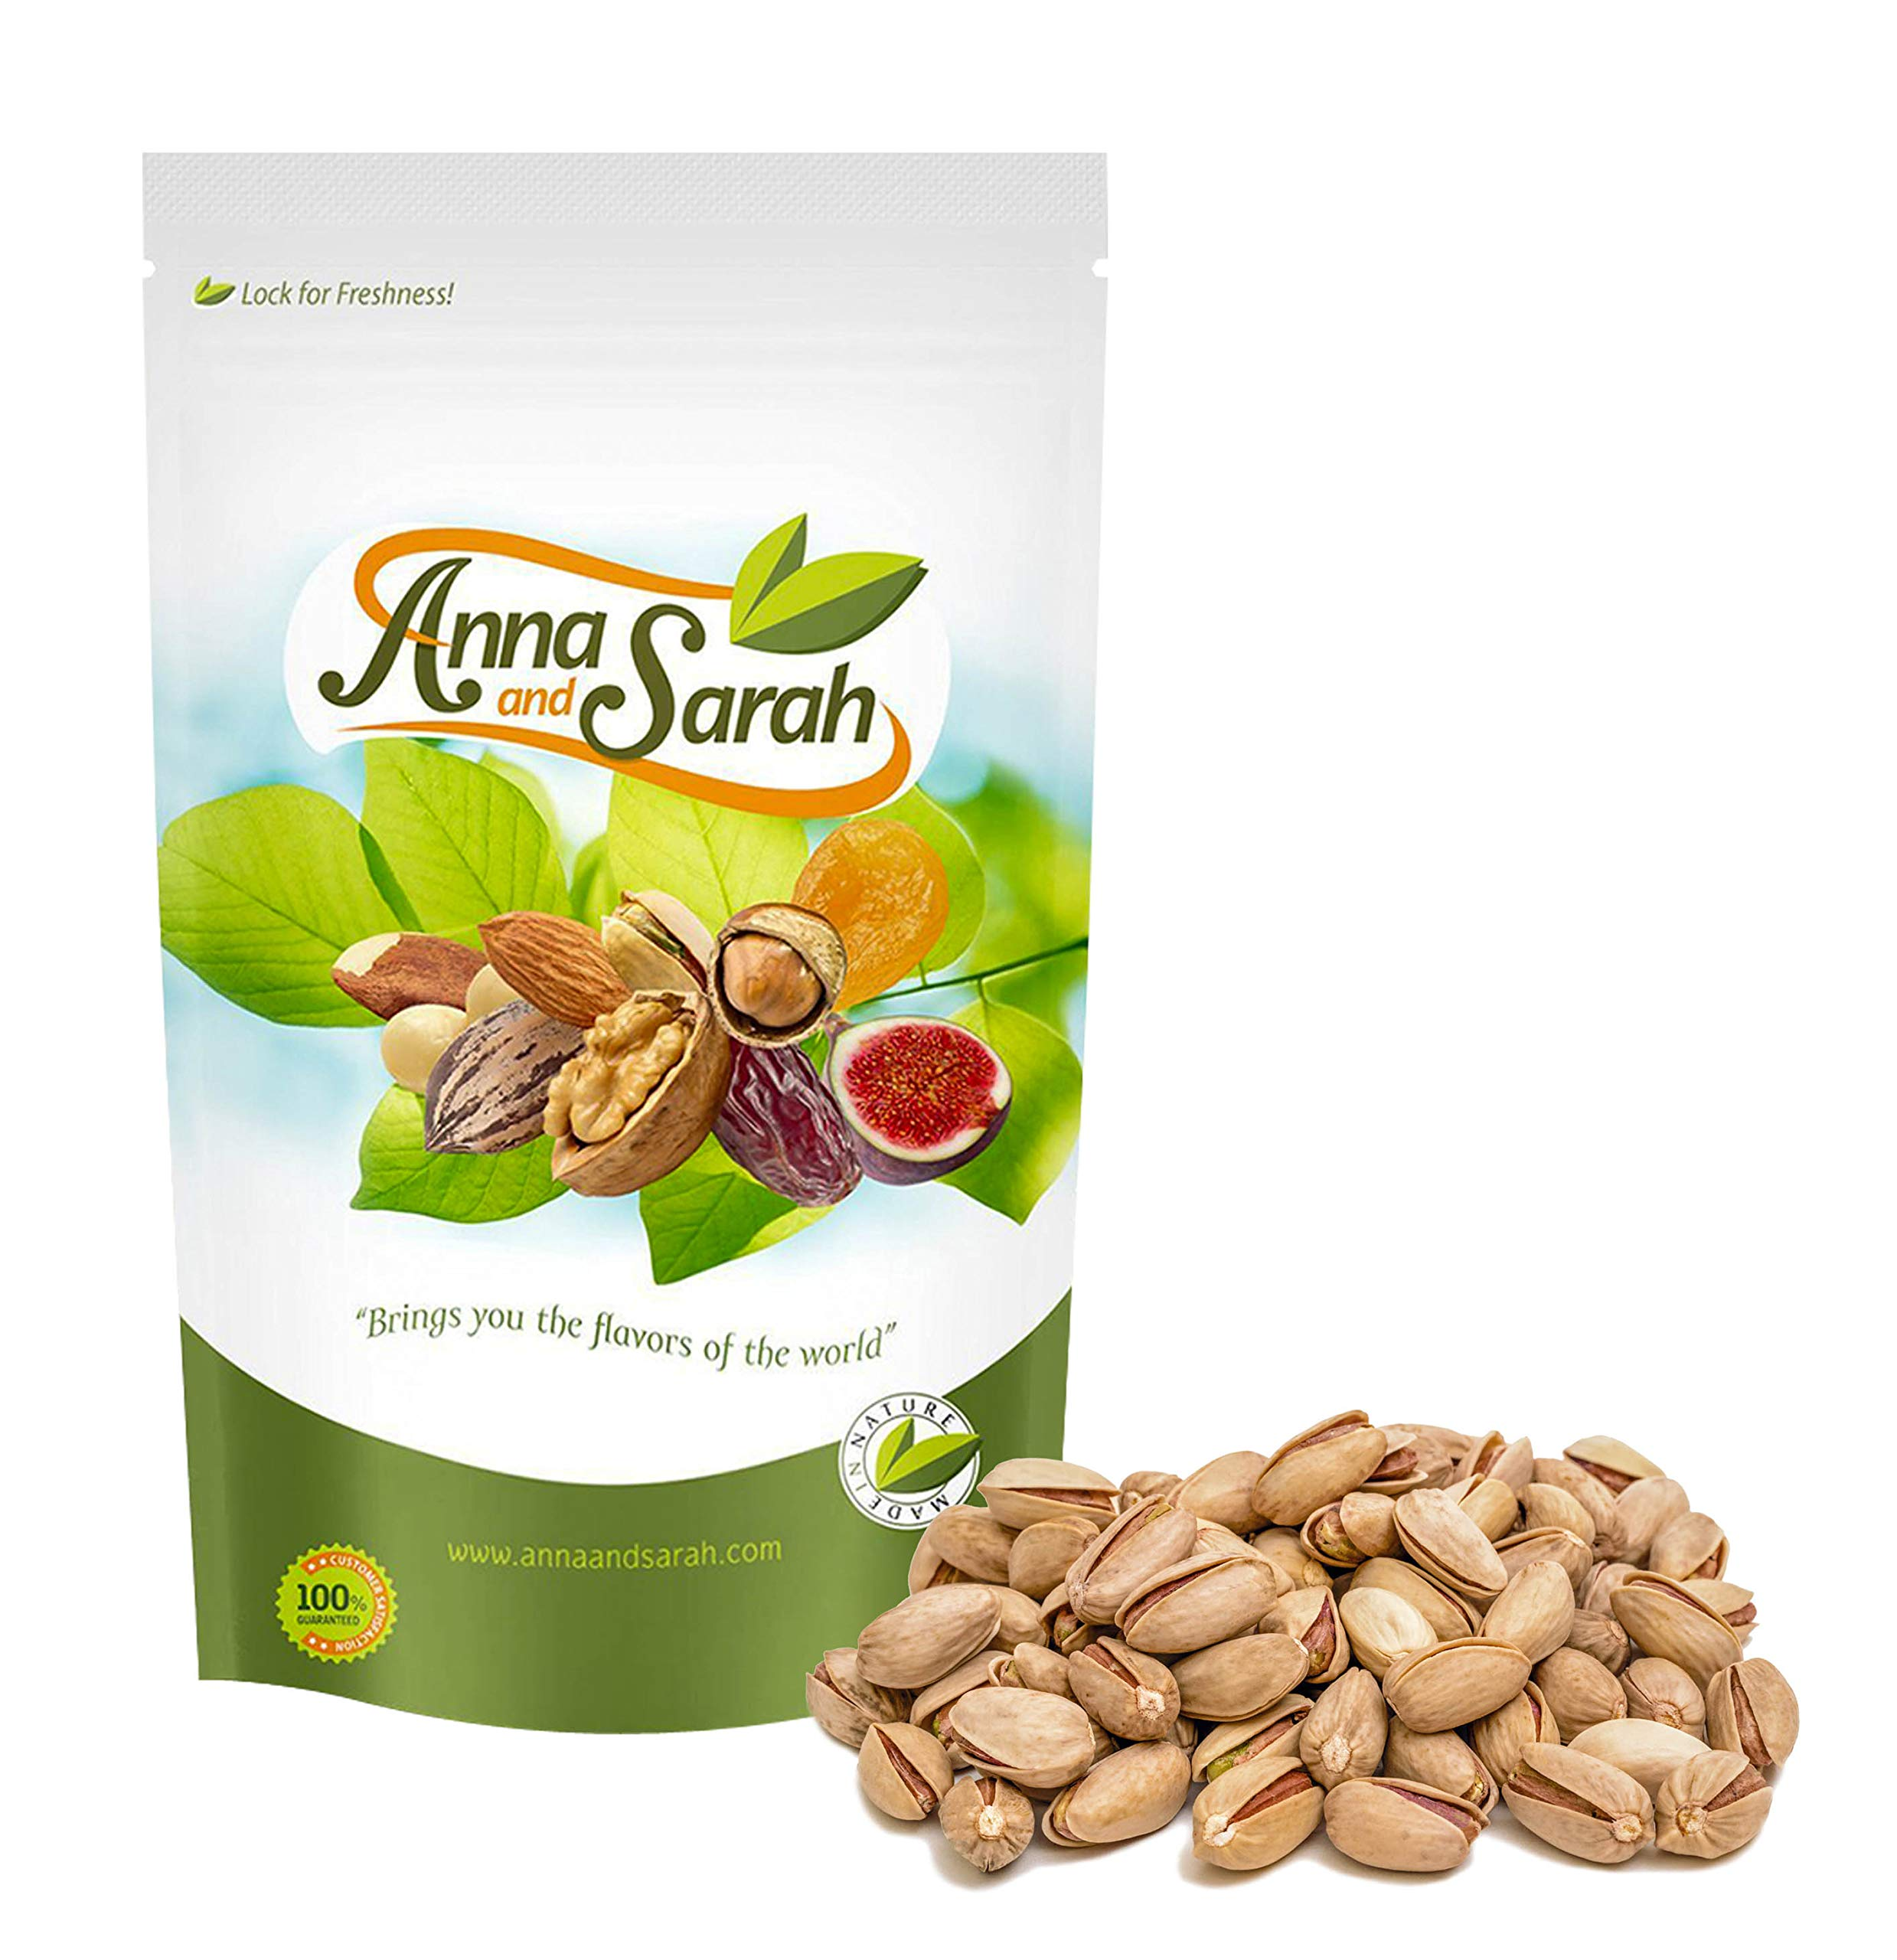 Anna and Sarah Turkish Pistachios Antep 3 Lbs in Resealable Bag by Anna and Sarah (Image #2)